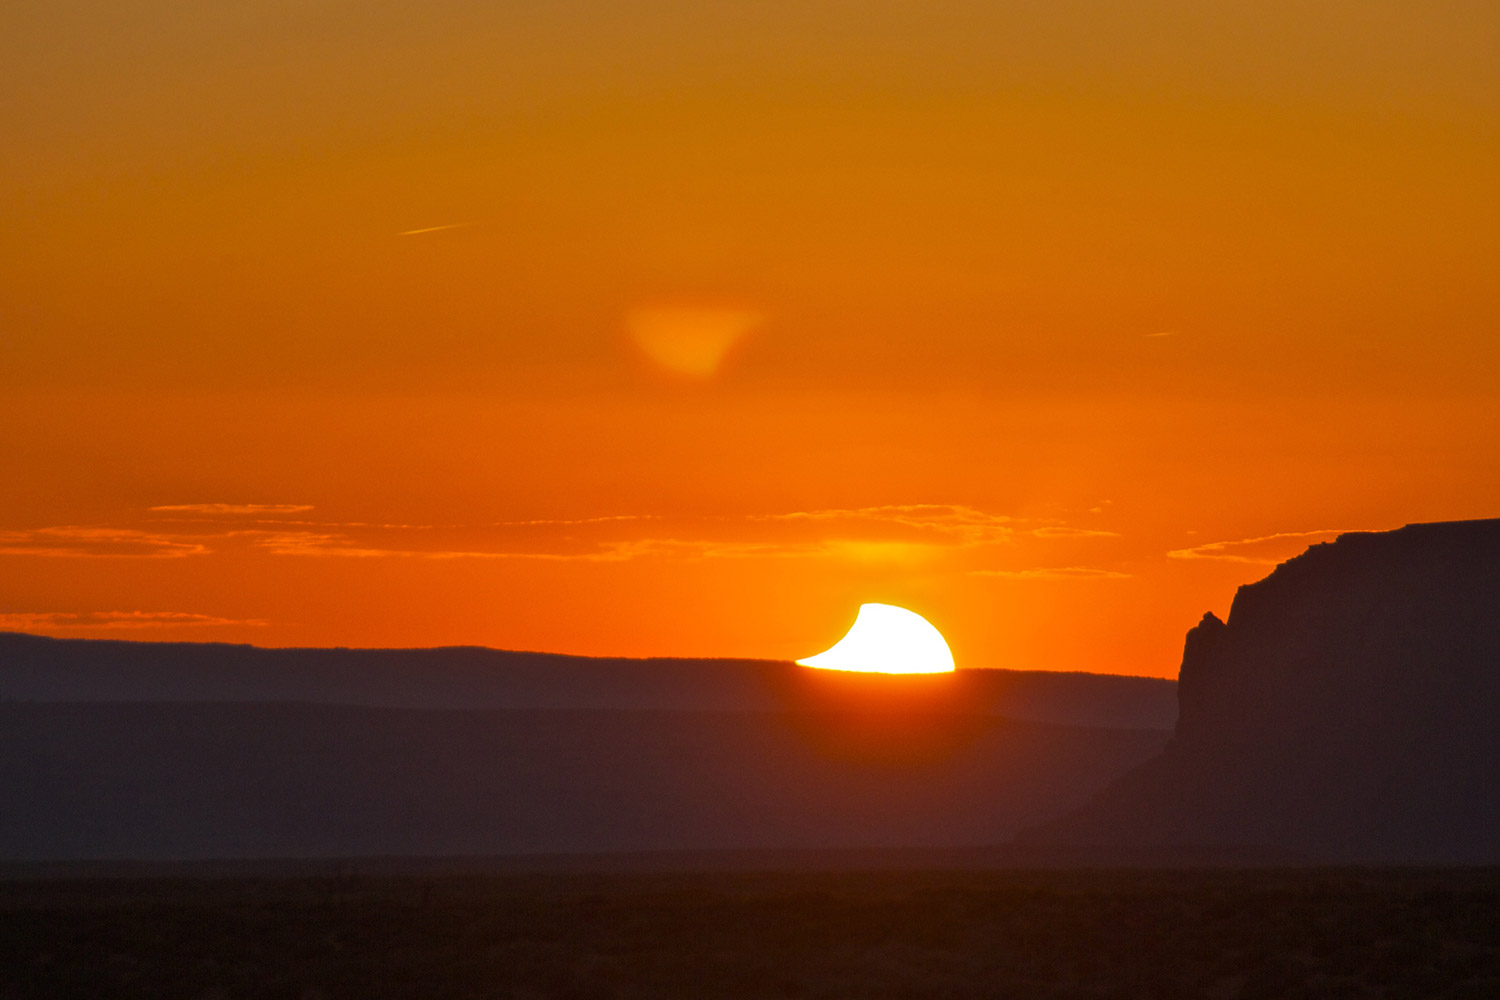 An eclipse of the Sun at sunset over Monument Valley, Utah shows the Moon gradually moving off revealing the surface of the Sun. Credit: Mike Barrett